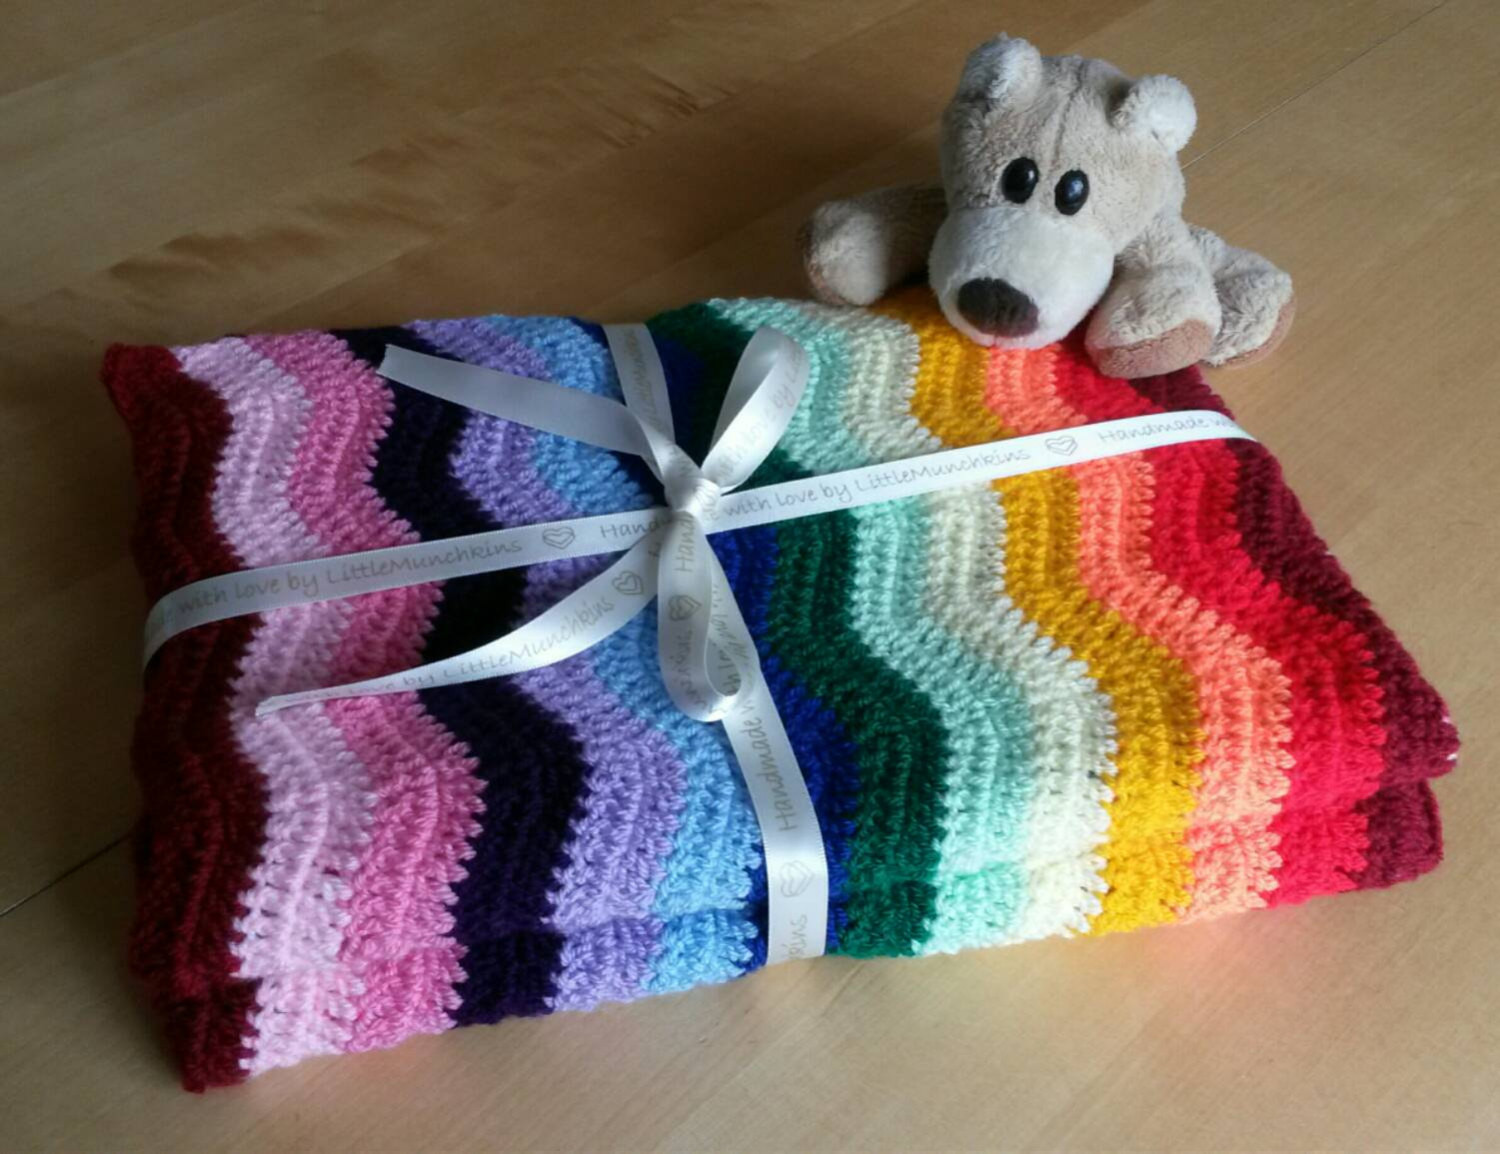 Rainbow Baby Blanket Inspirational Rainbow Baby Blanket Crochet Ripple Blanket Afghan Baby Of Charming 42 Ideas Rainbow Baby Blanket